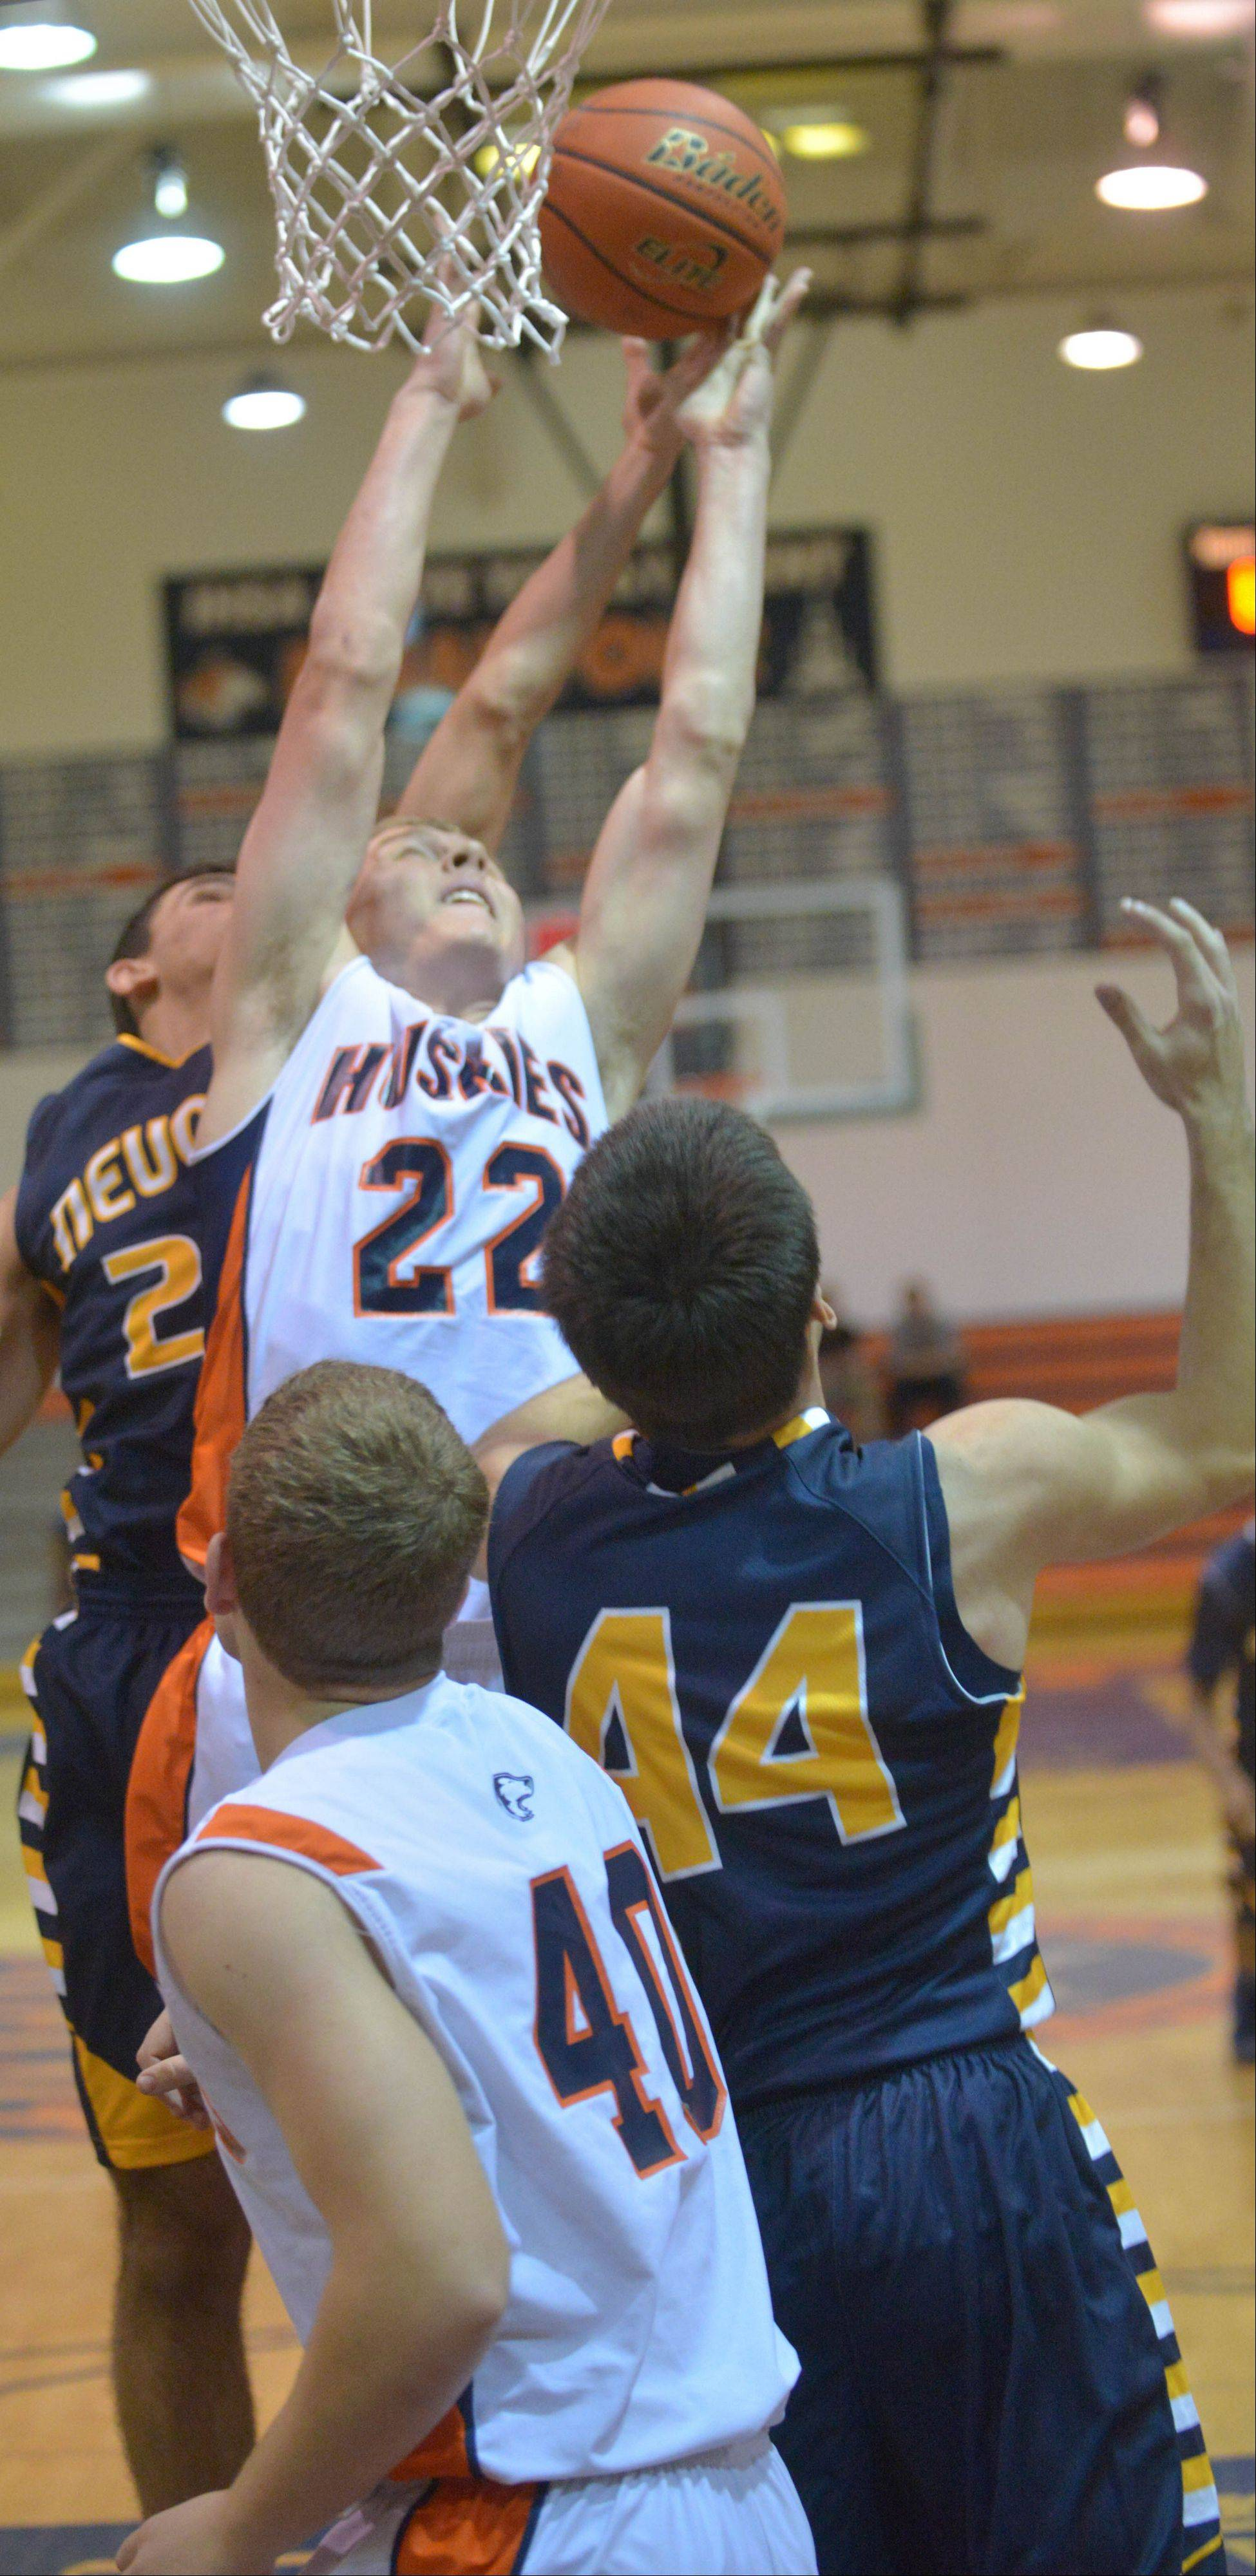 Baylor Griffin of Naperville North goes for a rebound during the Neuqua Valley at Naperville North boys basketball game Wednesday.